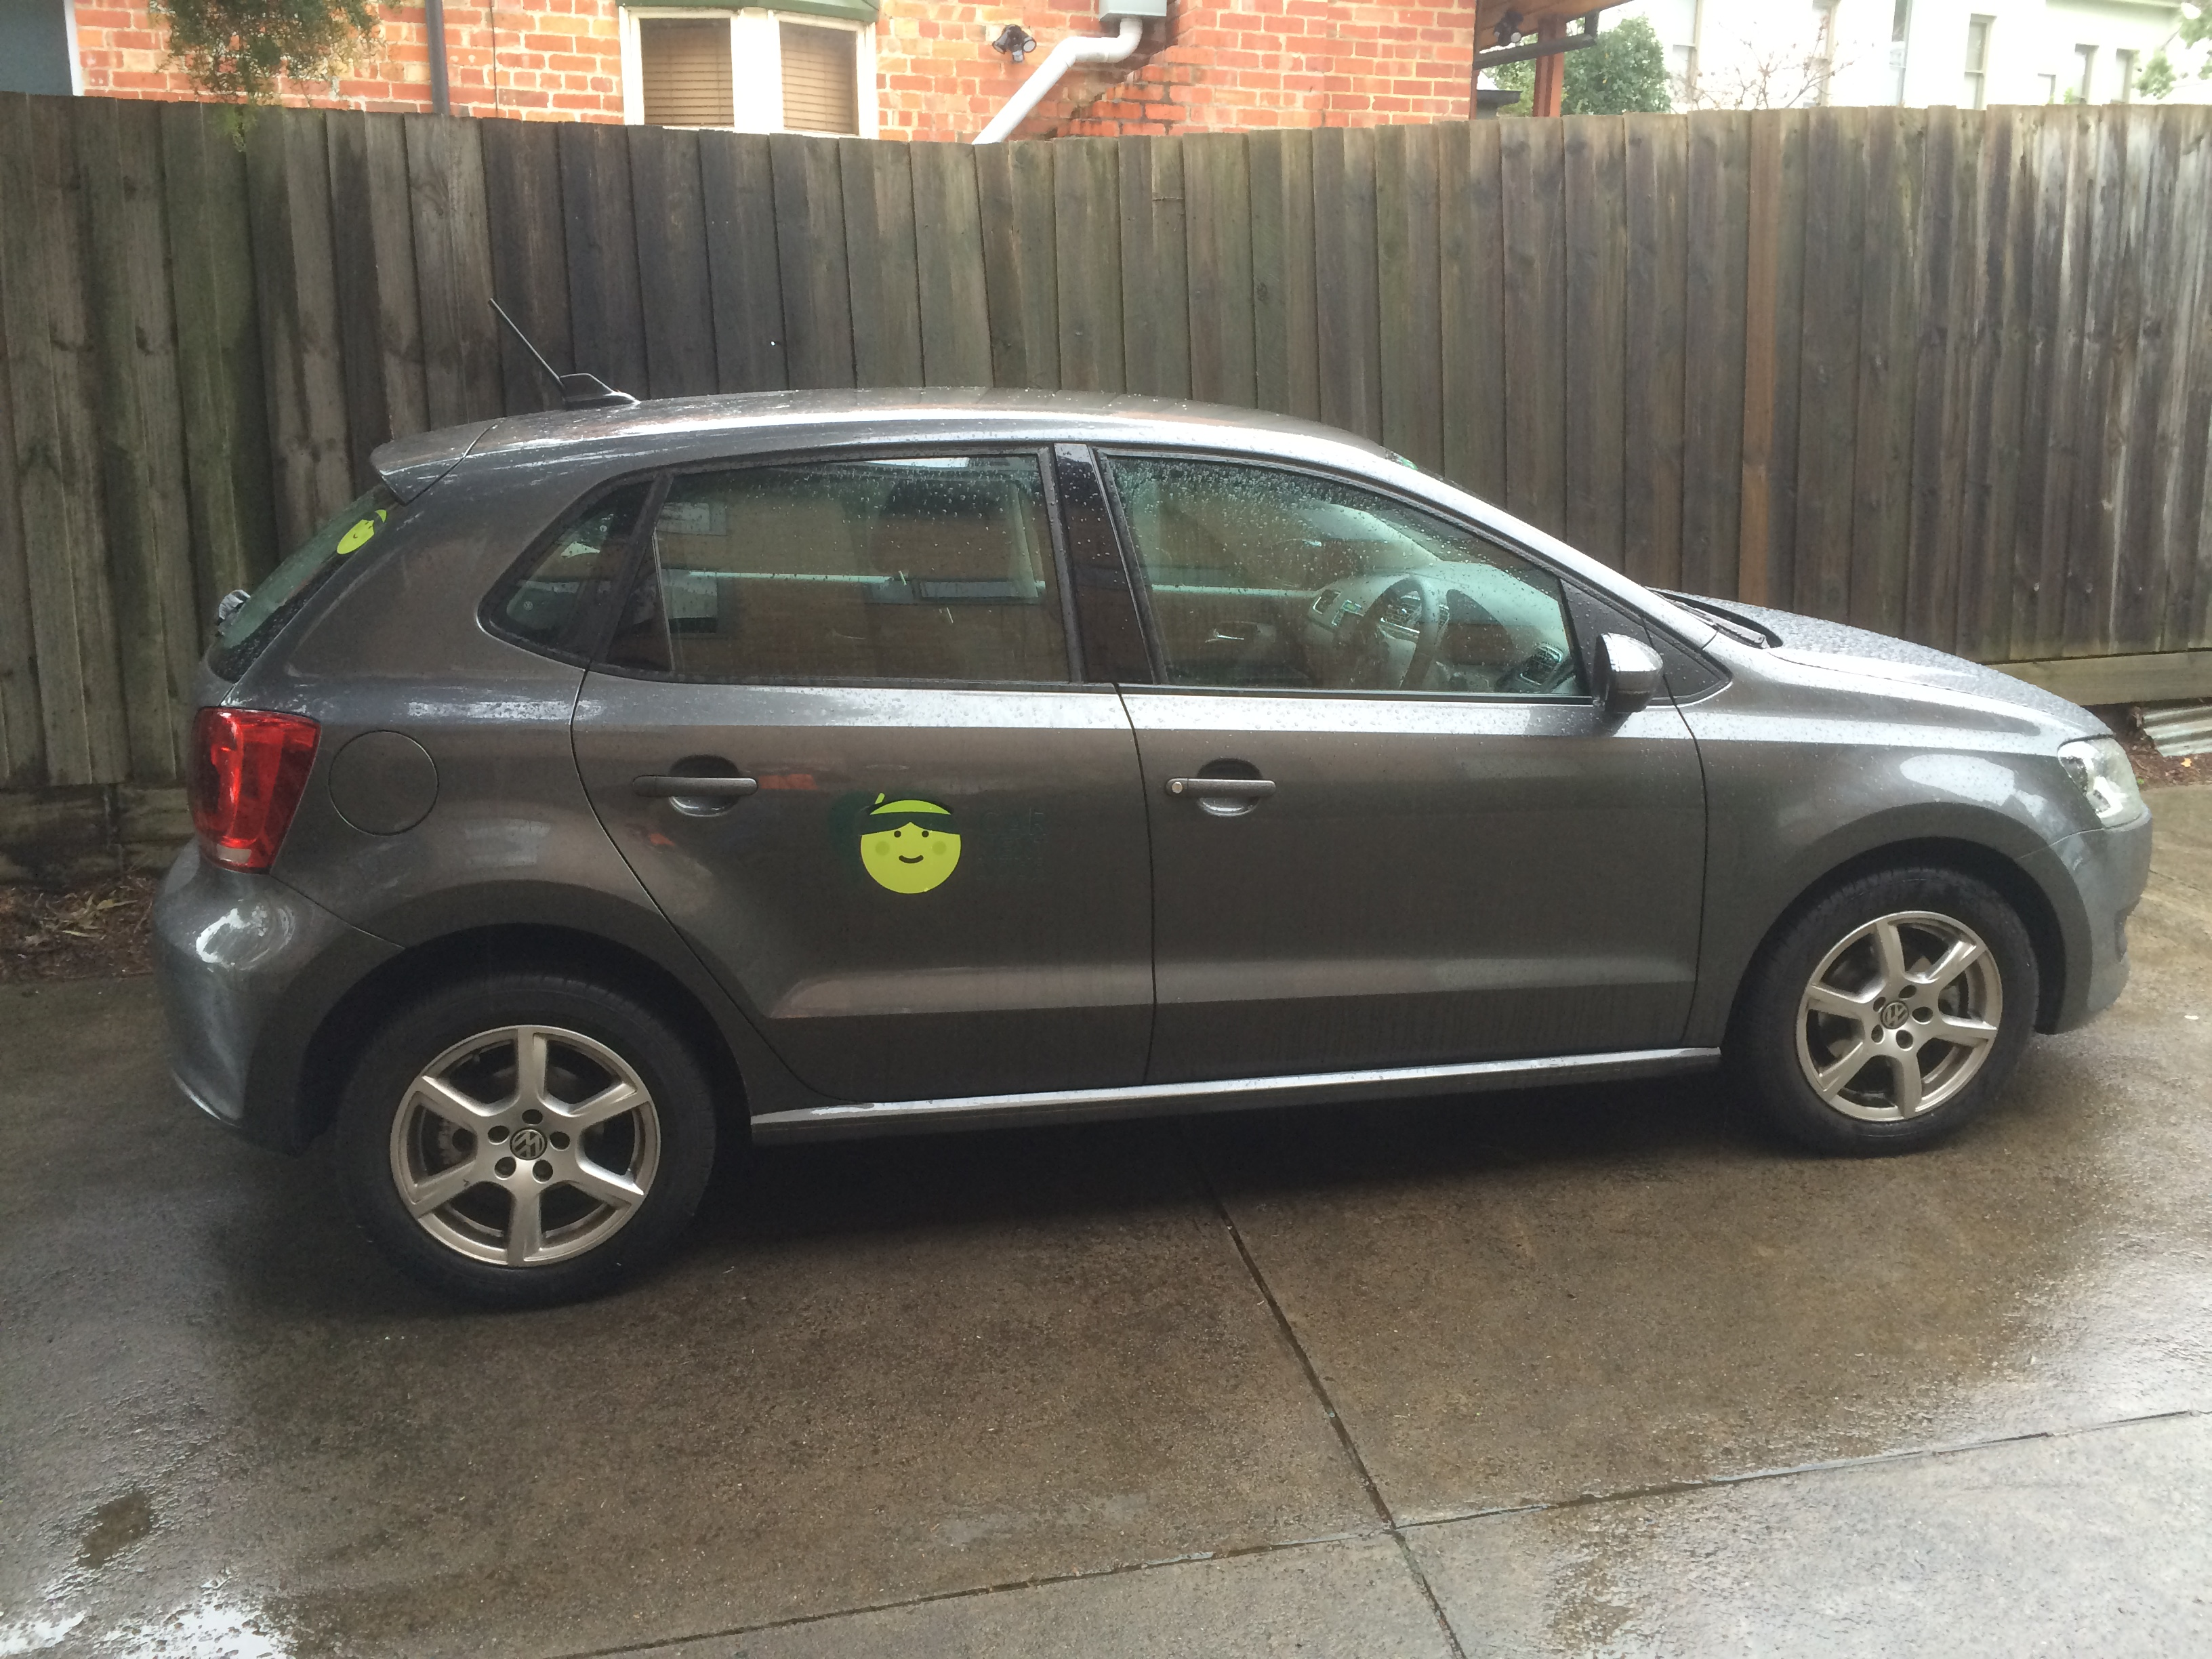 Picture of Bryony's 2014 Volkswagen Polo